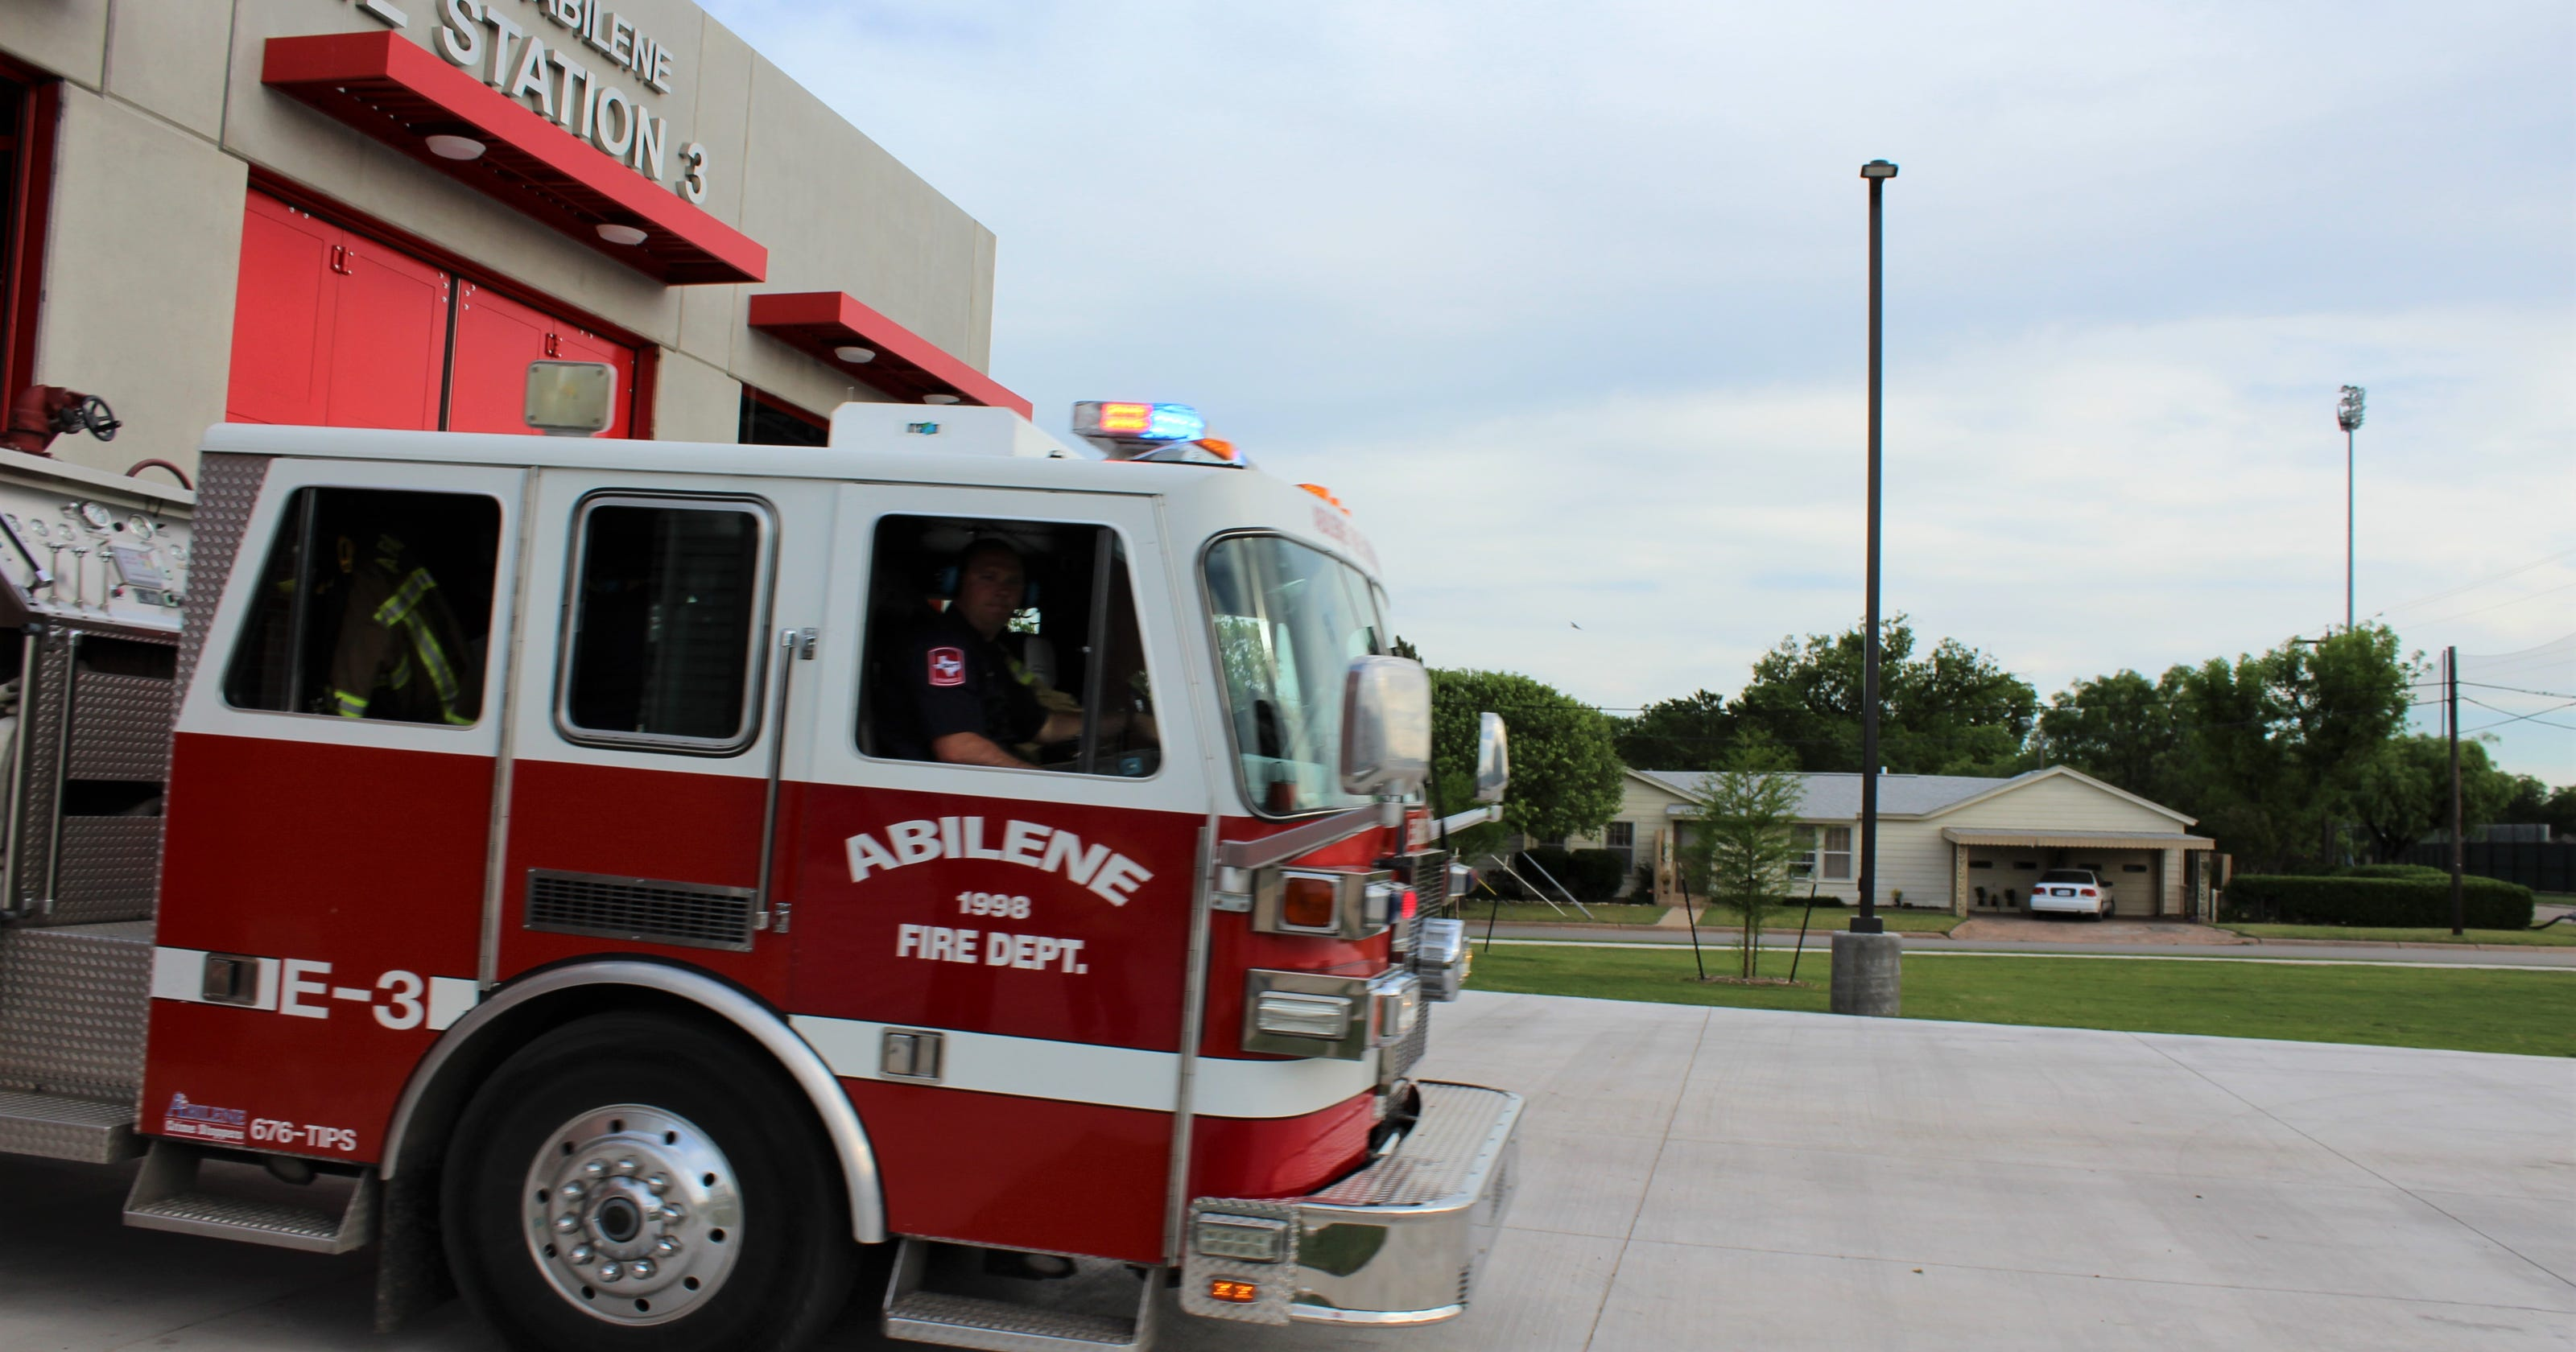 For Abilene Fire Department, it's two jobs in one